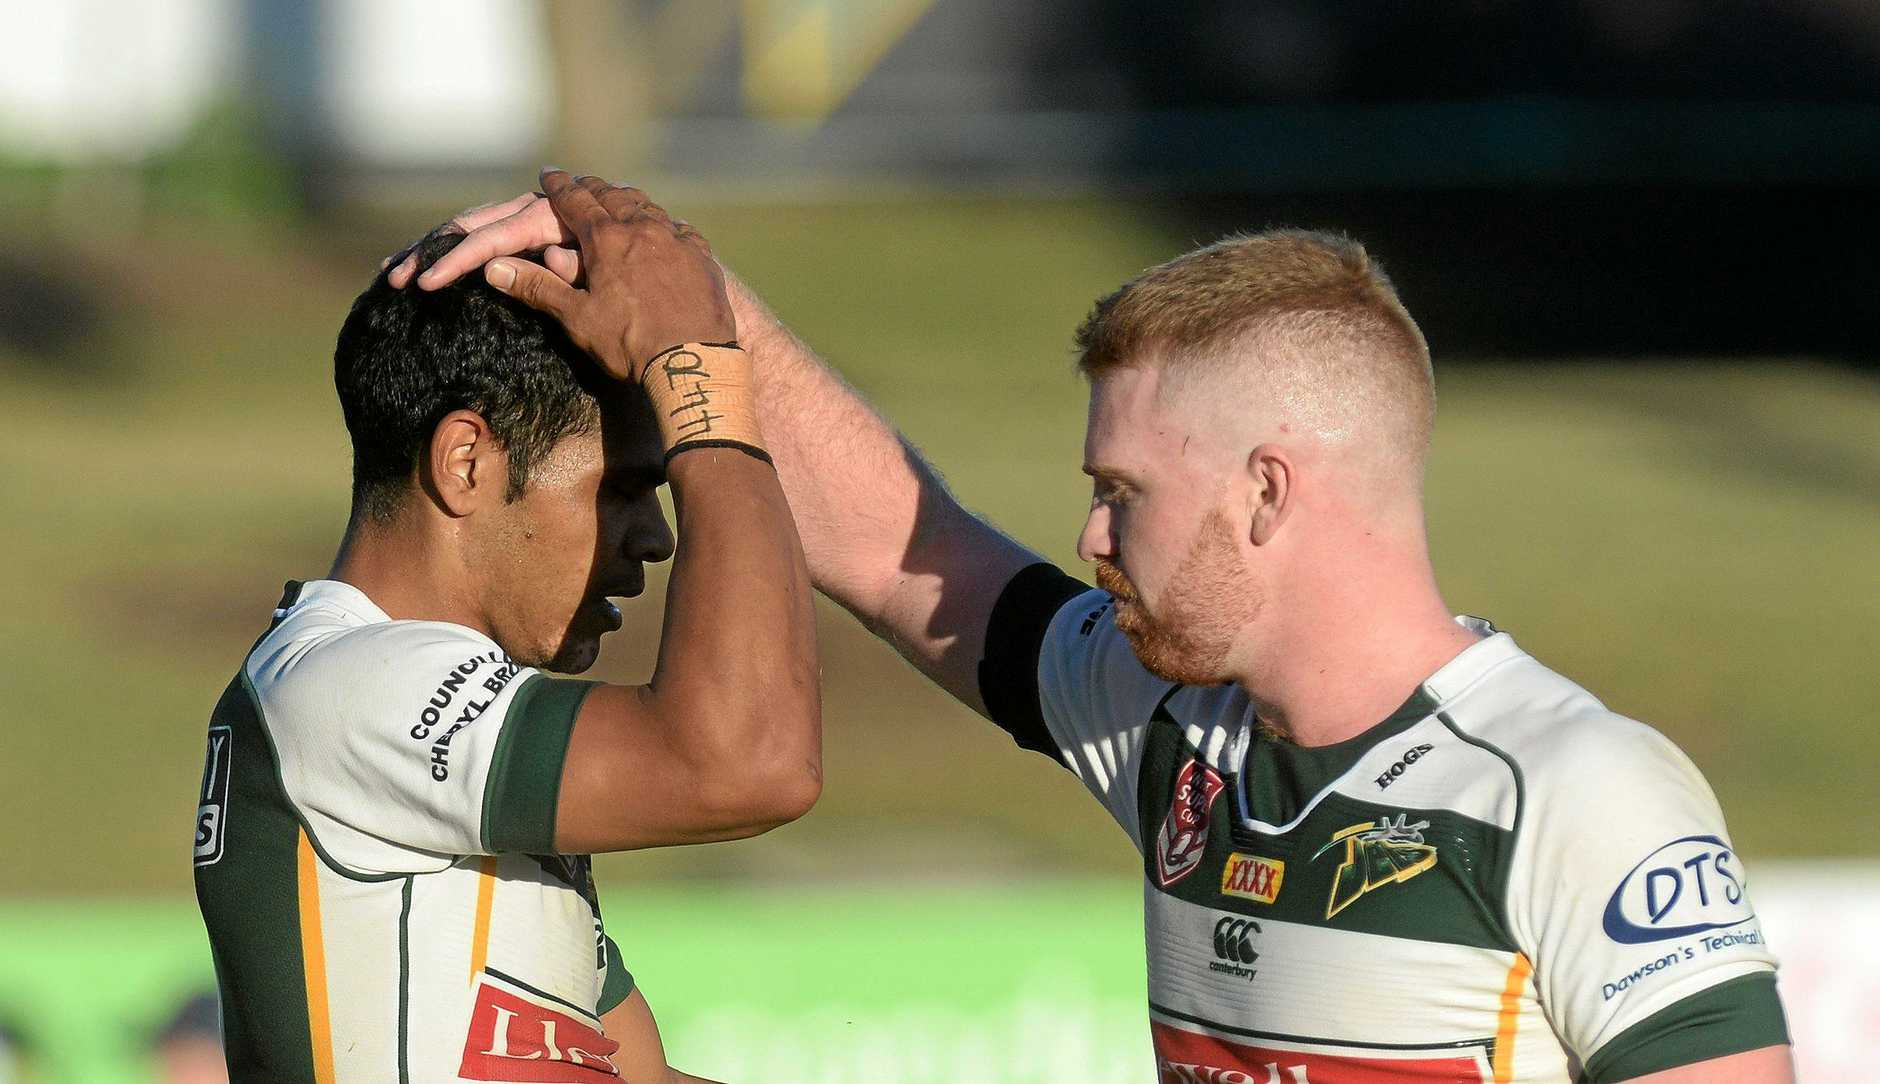 Jets players Michael Purcell and Chris Ash were among the line-up of Ipswich players to score tries in their team's crushing win over the Mackay Cutters.